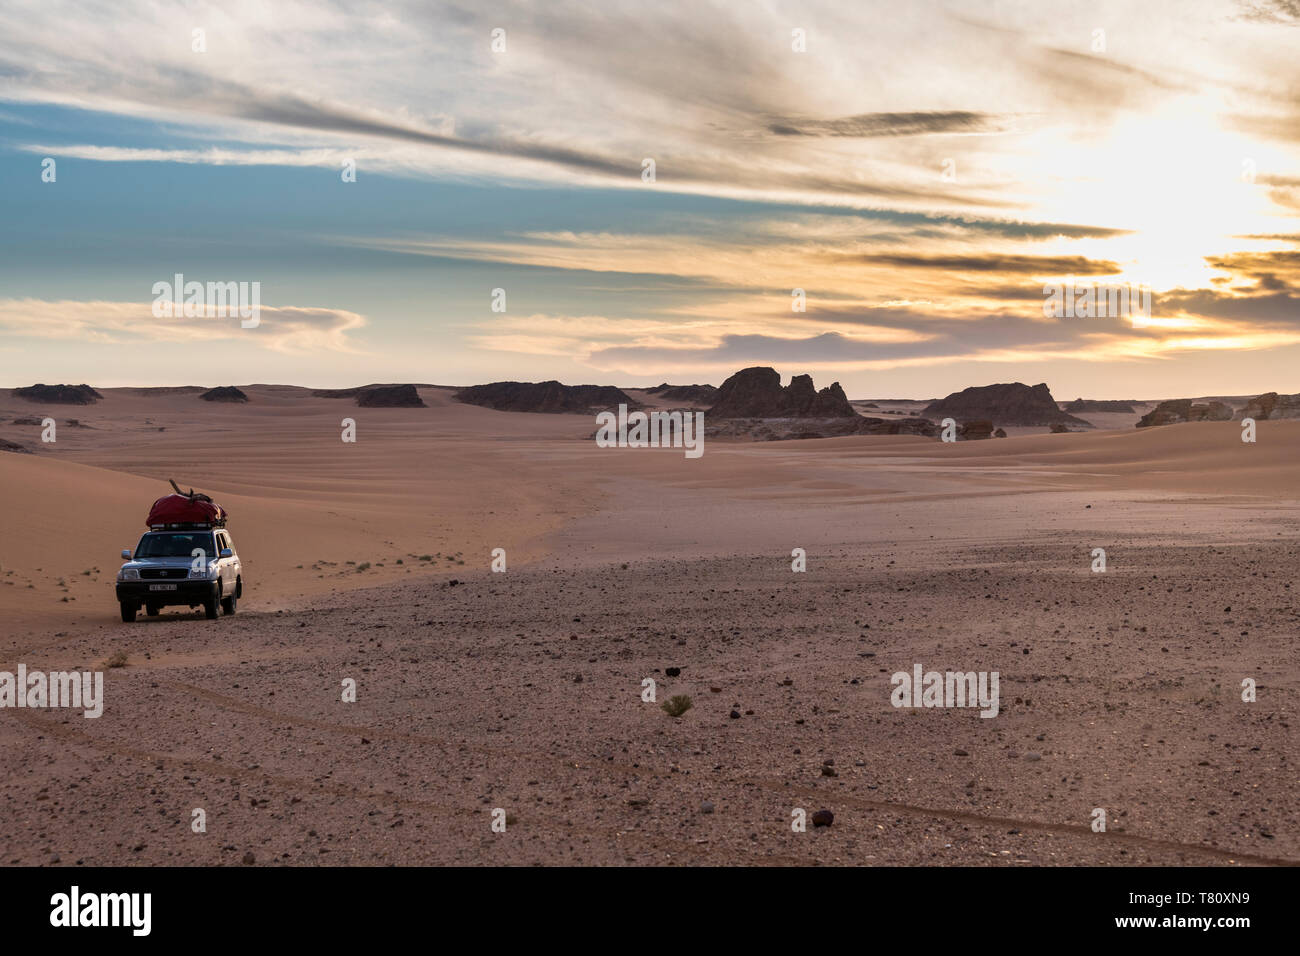 Expedition jeep in Northern Chad, Africa - Stock Image